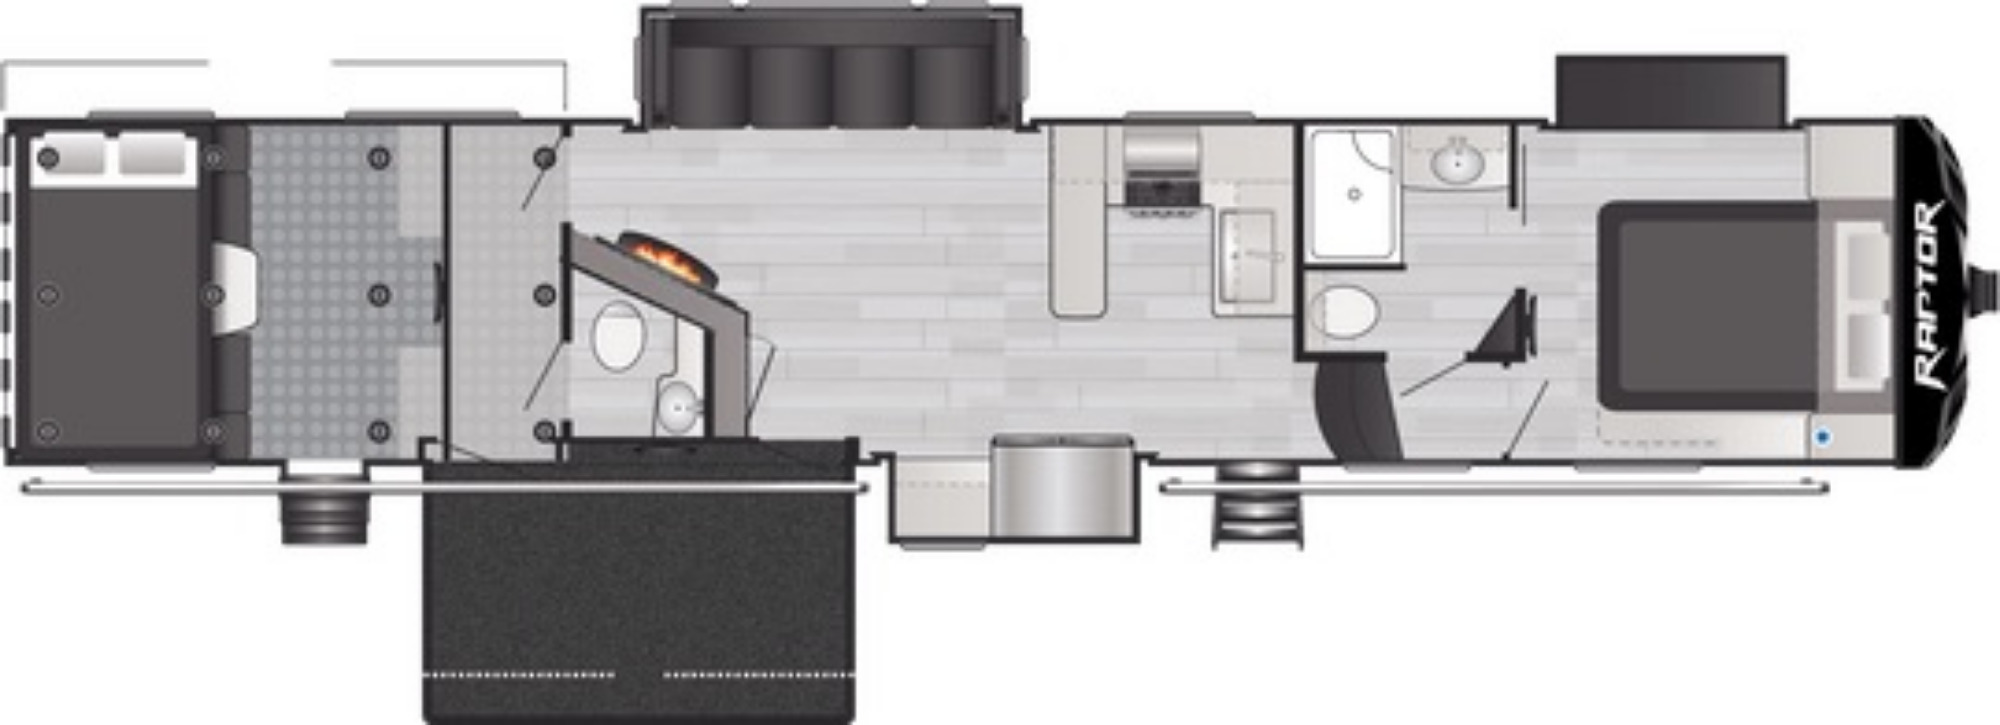 View Floor Plan for 2021 KEYSTONE RAPTOR 429